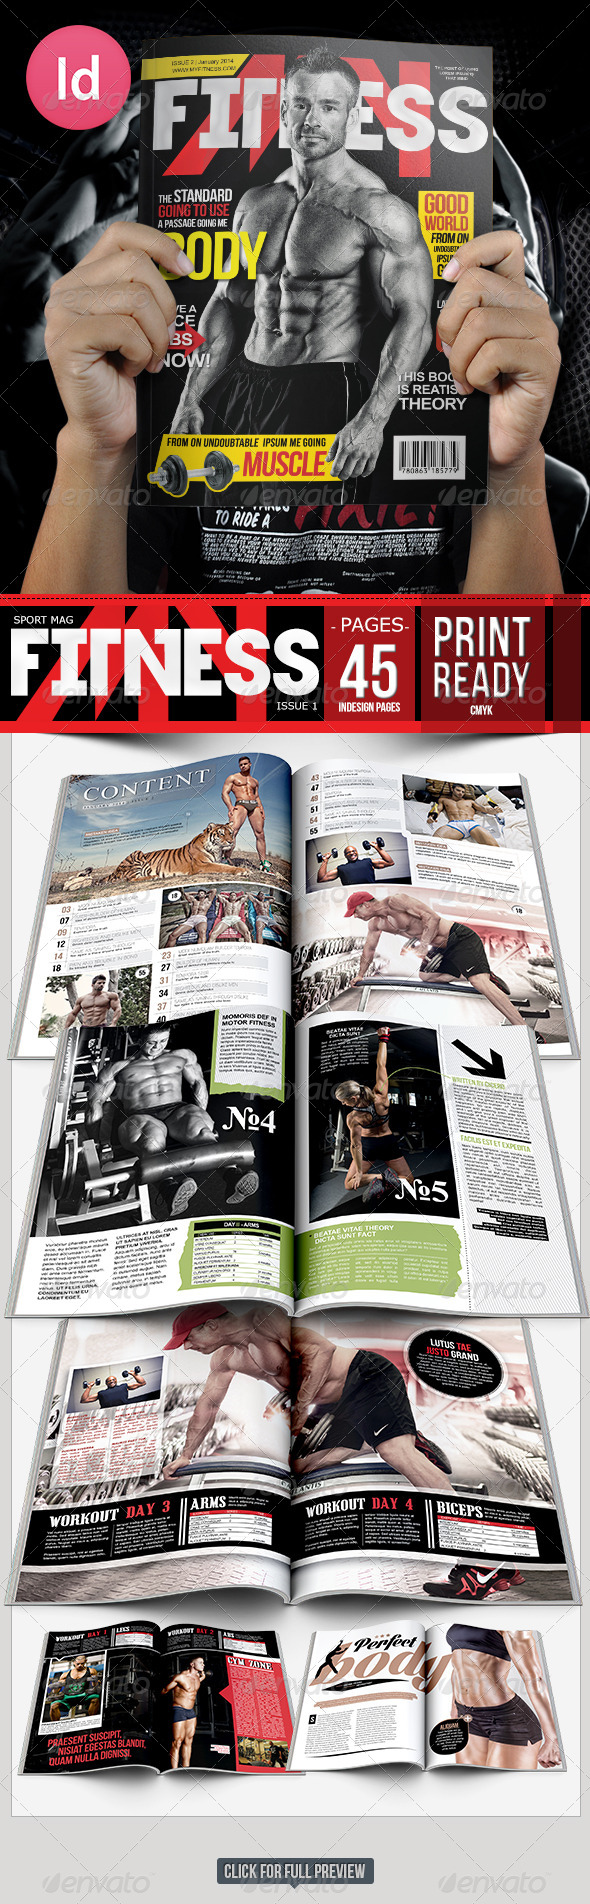 Fitness Body Magazine Issue 2 - Magazines Print Templates